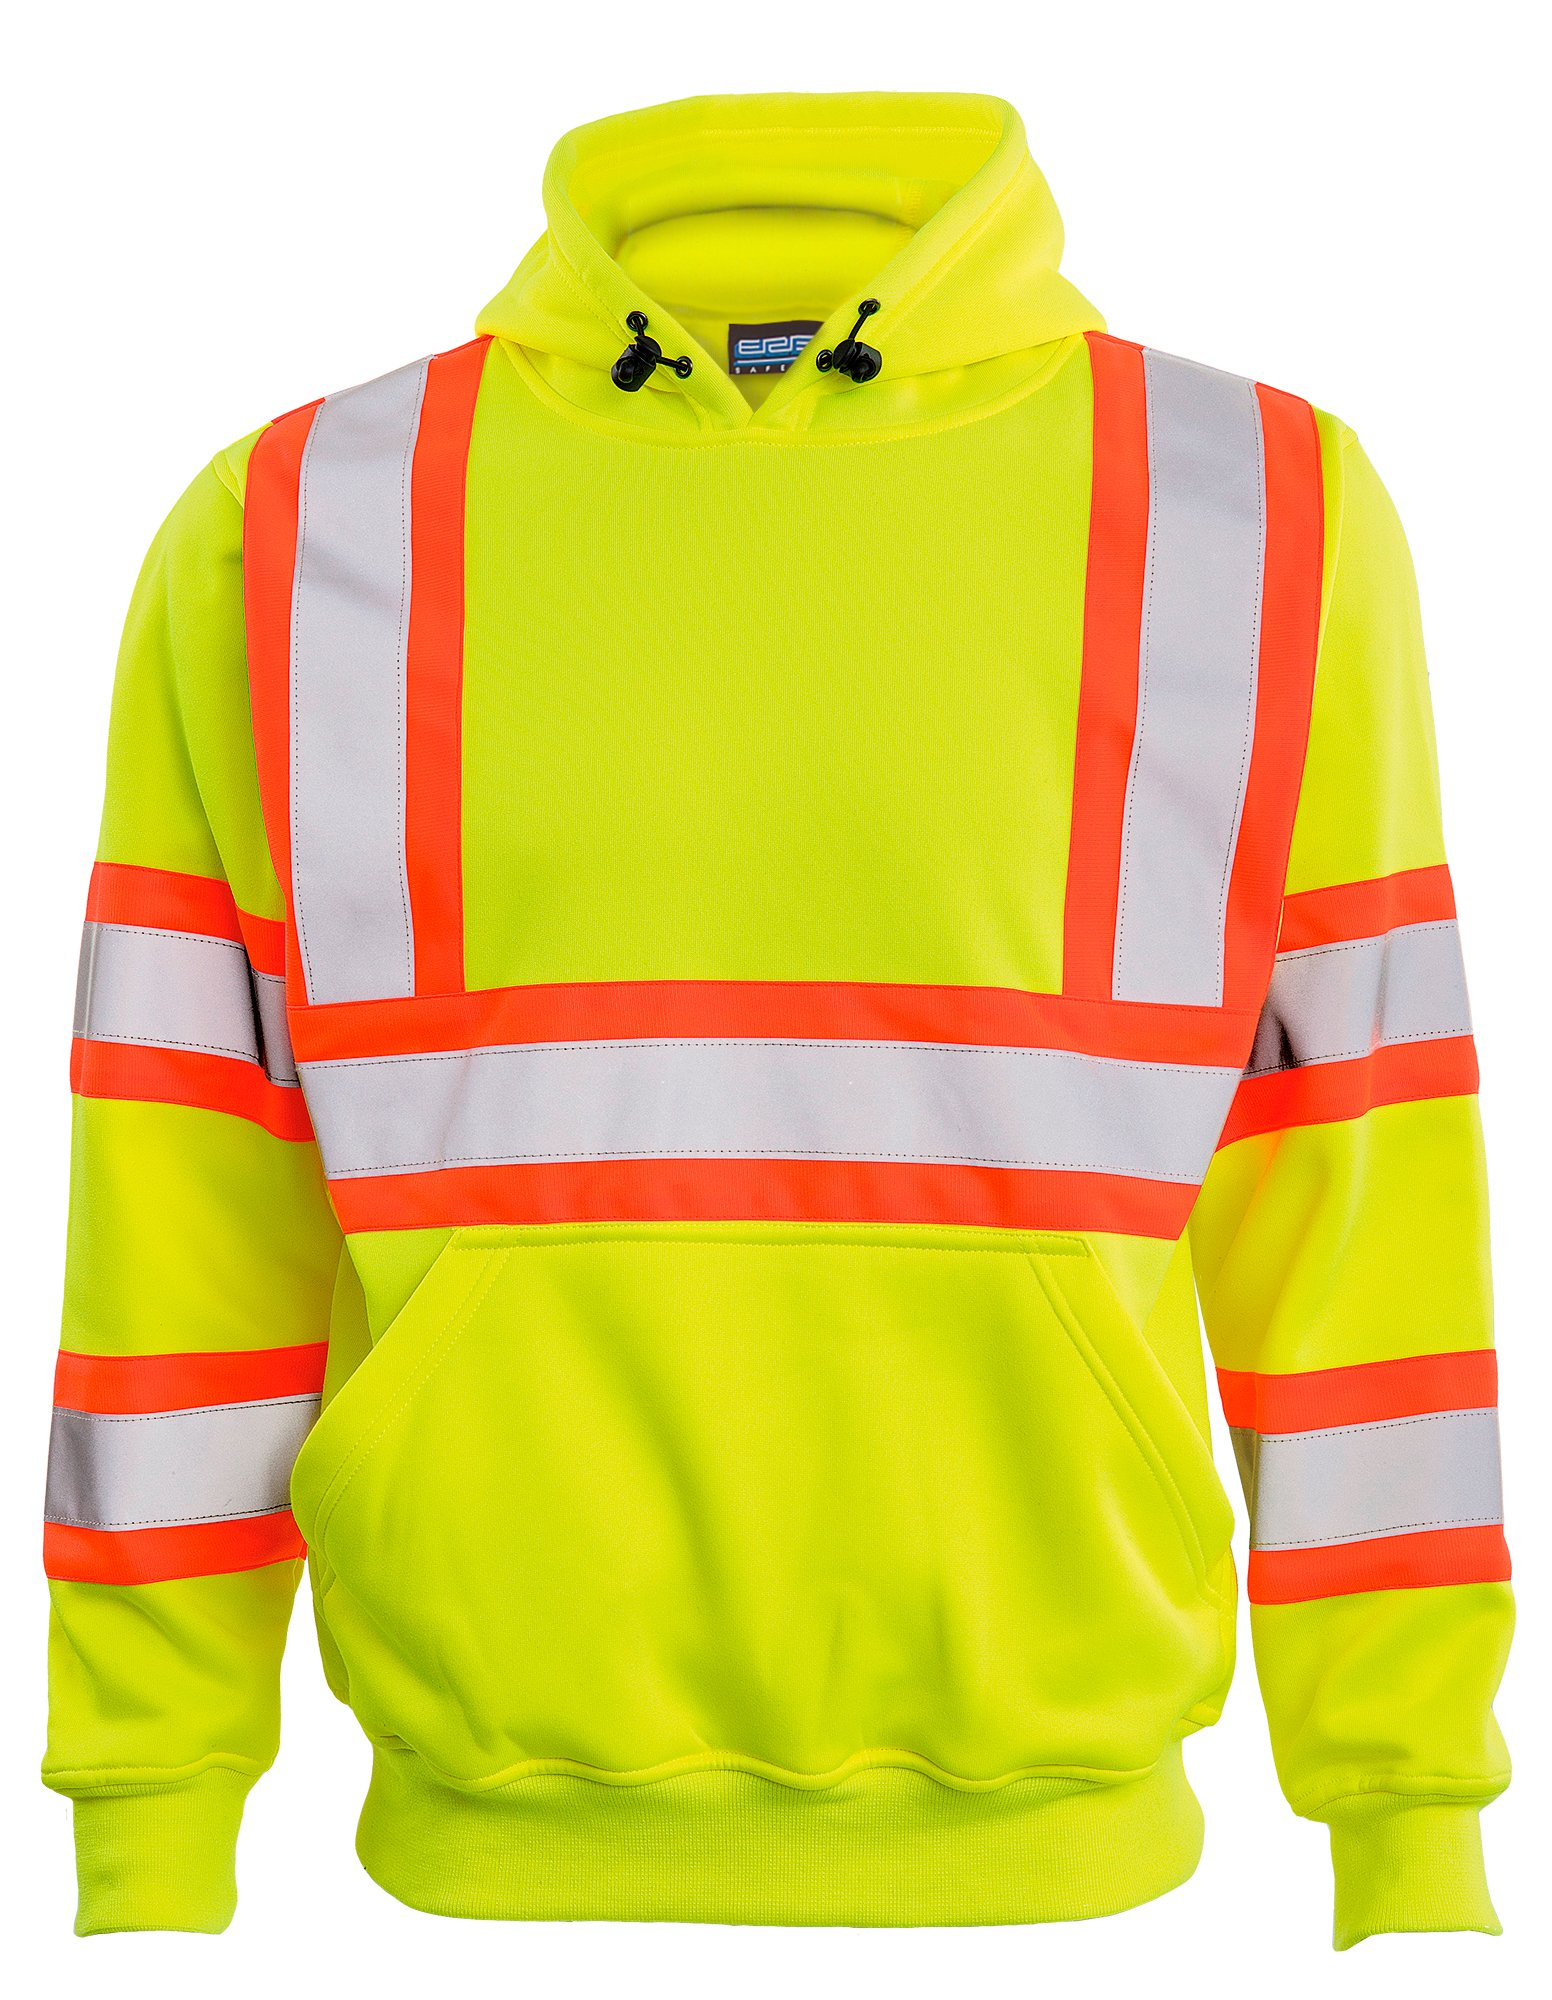 ERB Safety Products 63630 ERB W376C HVL Pullover Sweatshirt with Contrasting Trim, Class 3, XL, Yellow